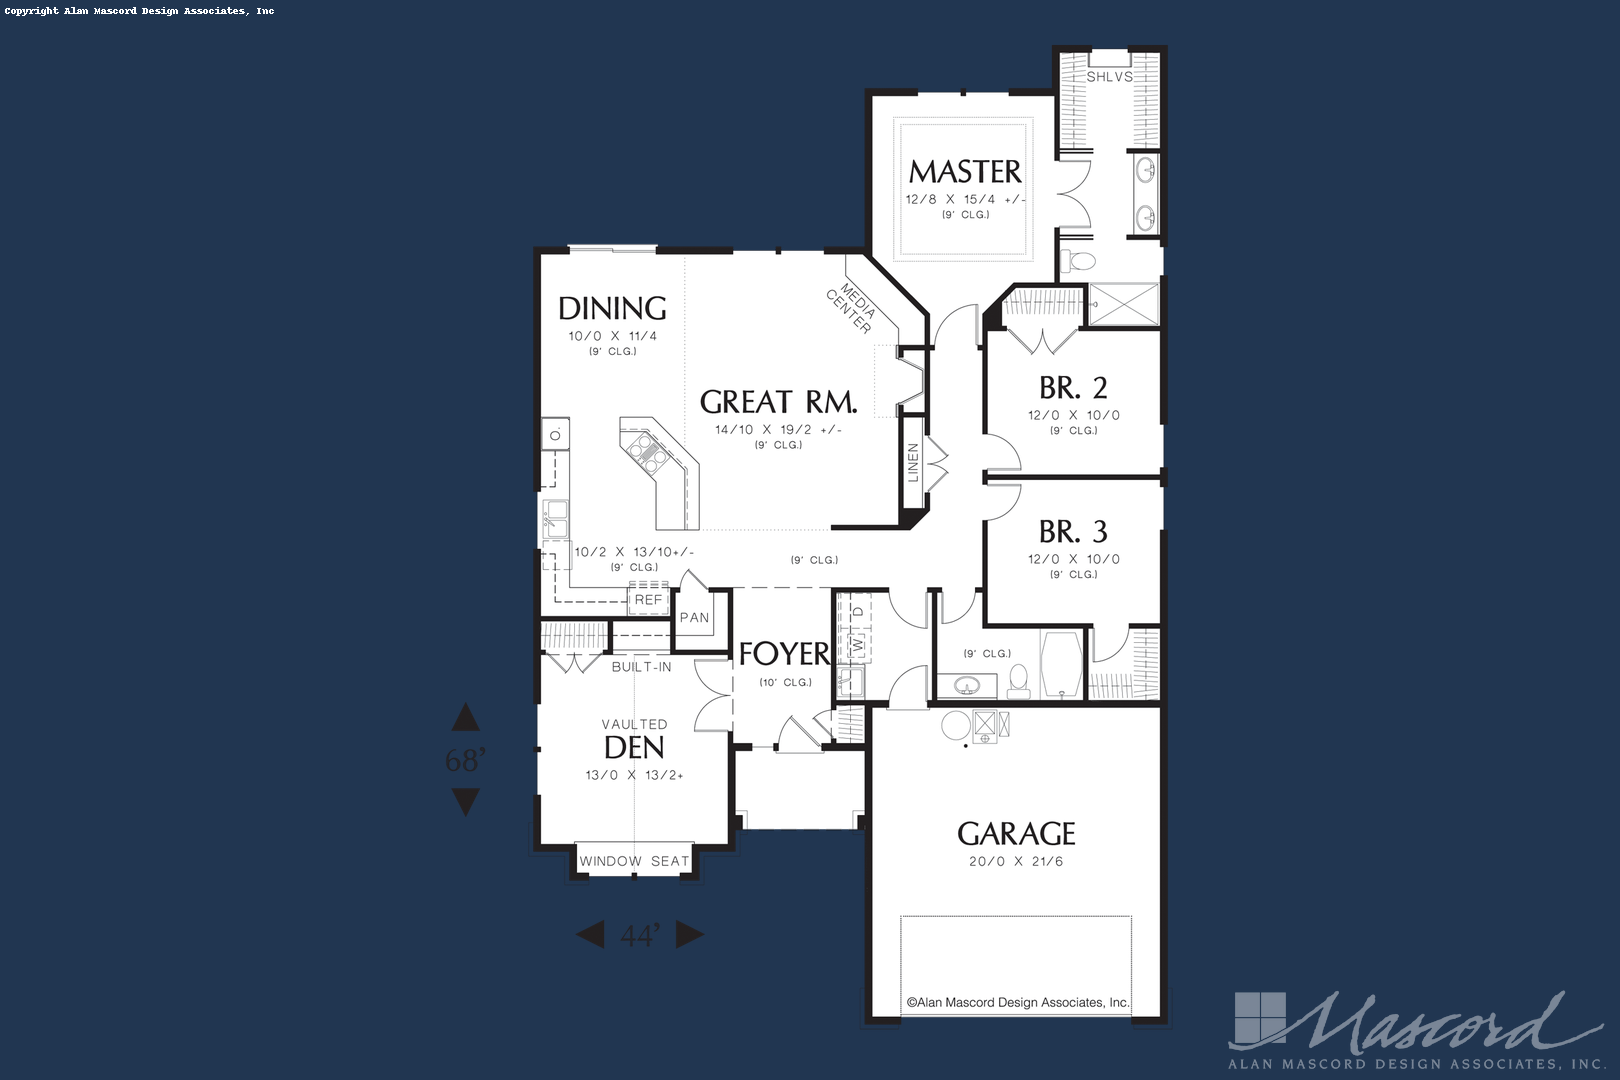 Craftsman House Plan 1103BA The Granville: 1850 Sqft, 3 Beds ... on katie homes, rocky homes, bella homes, minnie homes, samantha homes, victoria homes, sumeer homes,